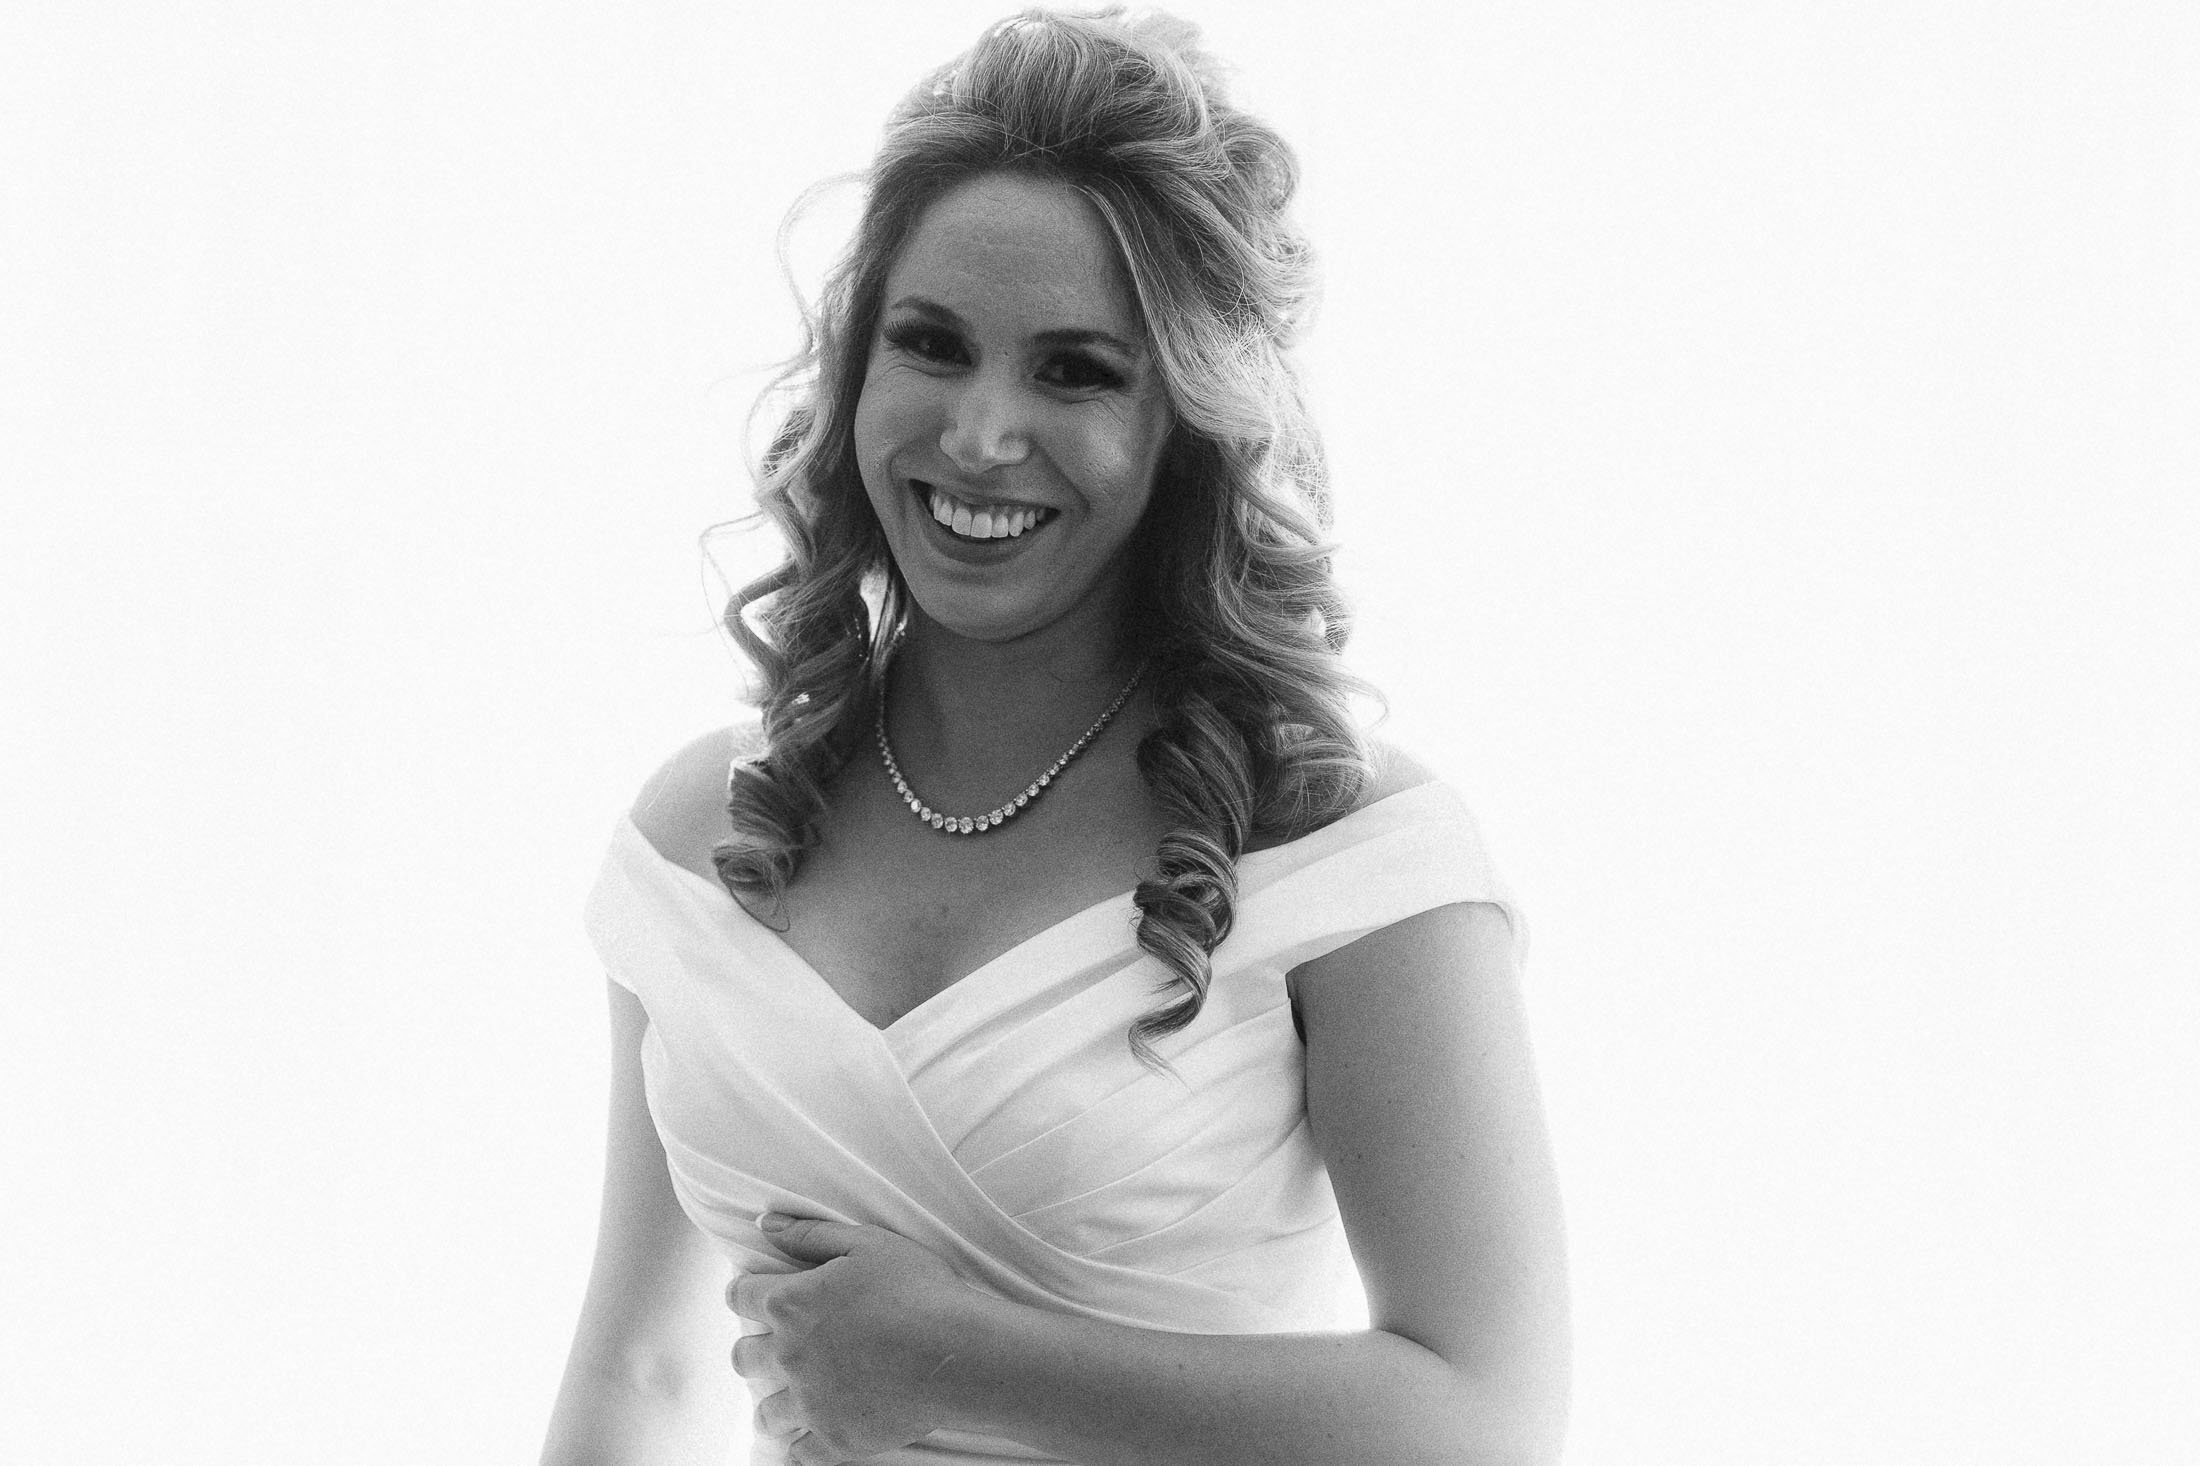 Black and white photo of bride in wedding dress smiling.